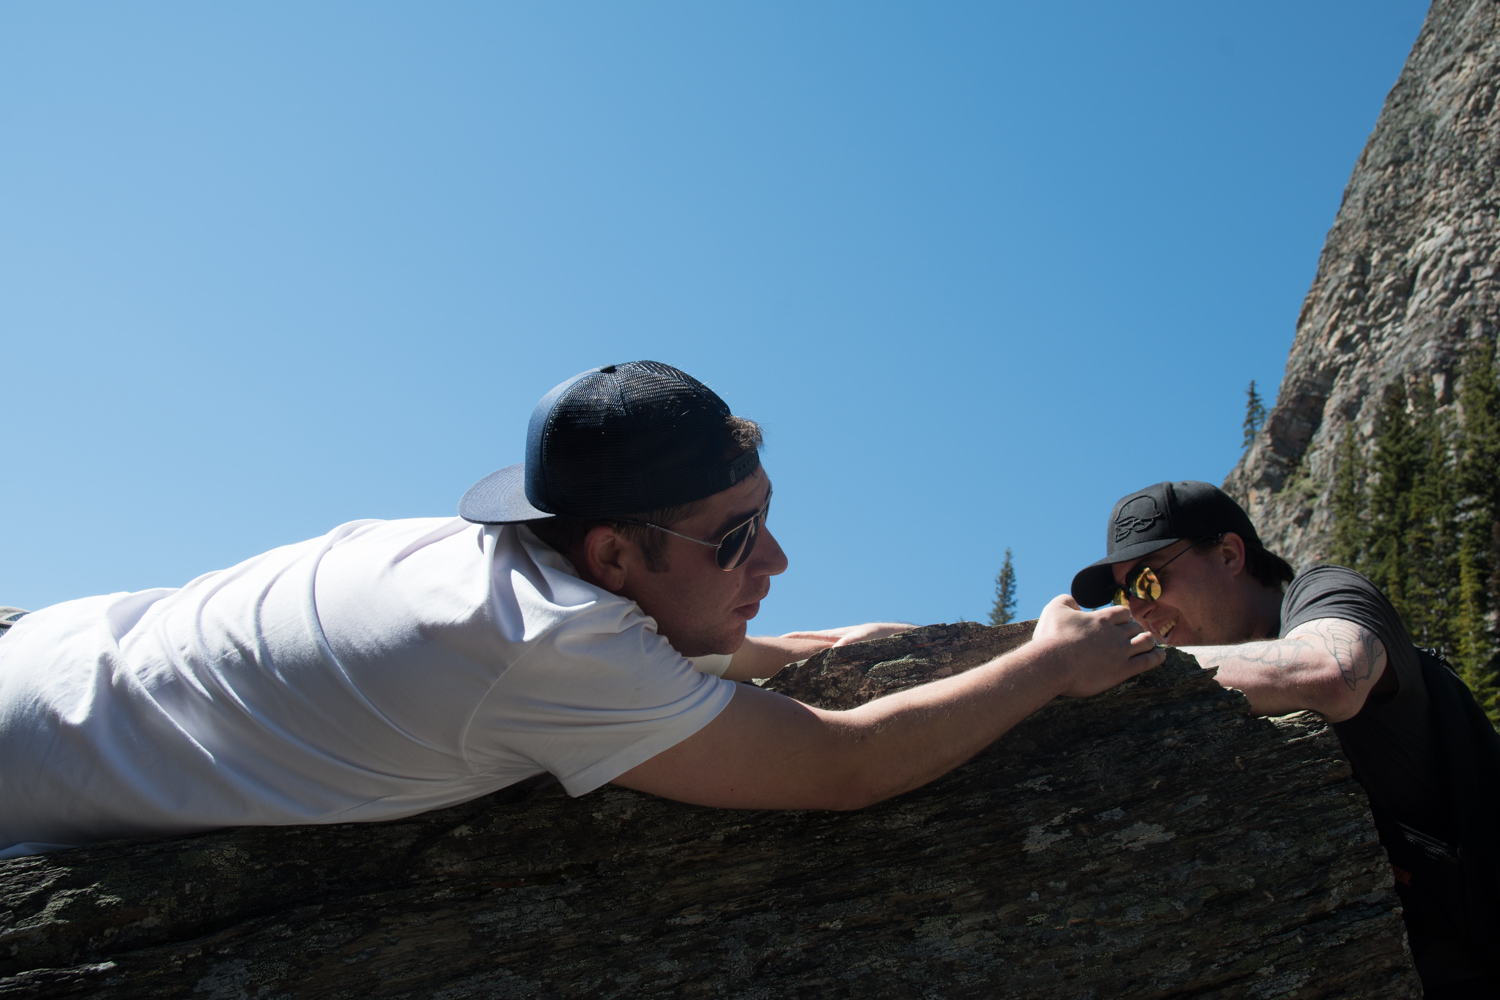 Trying to recreate a dramatic scene, from something like Vertical Limit.